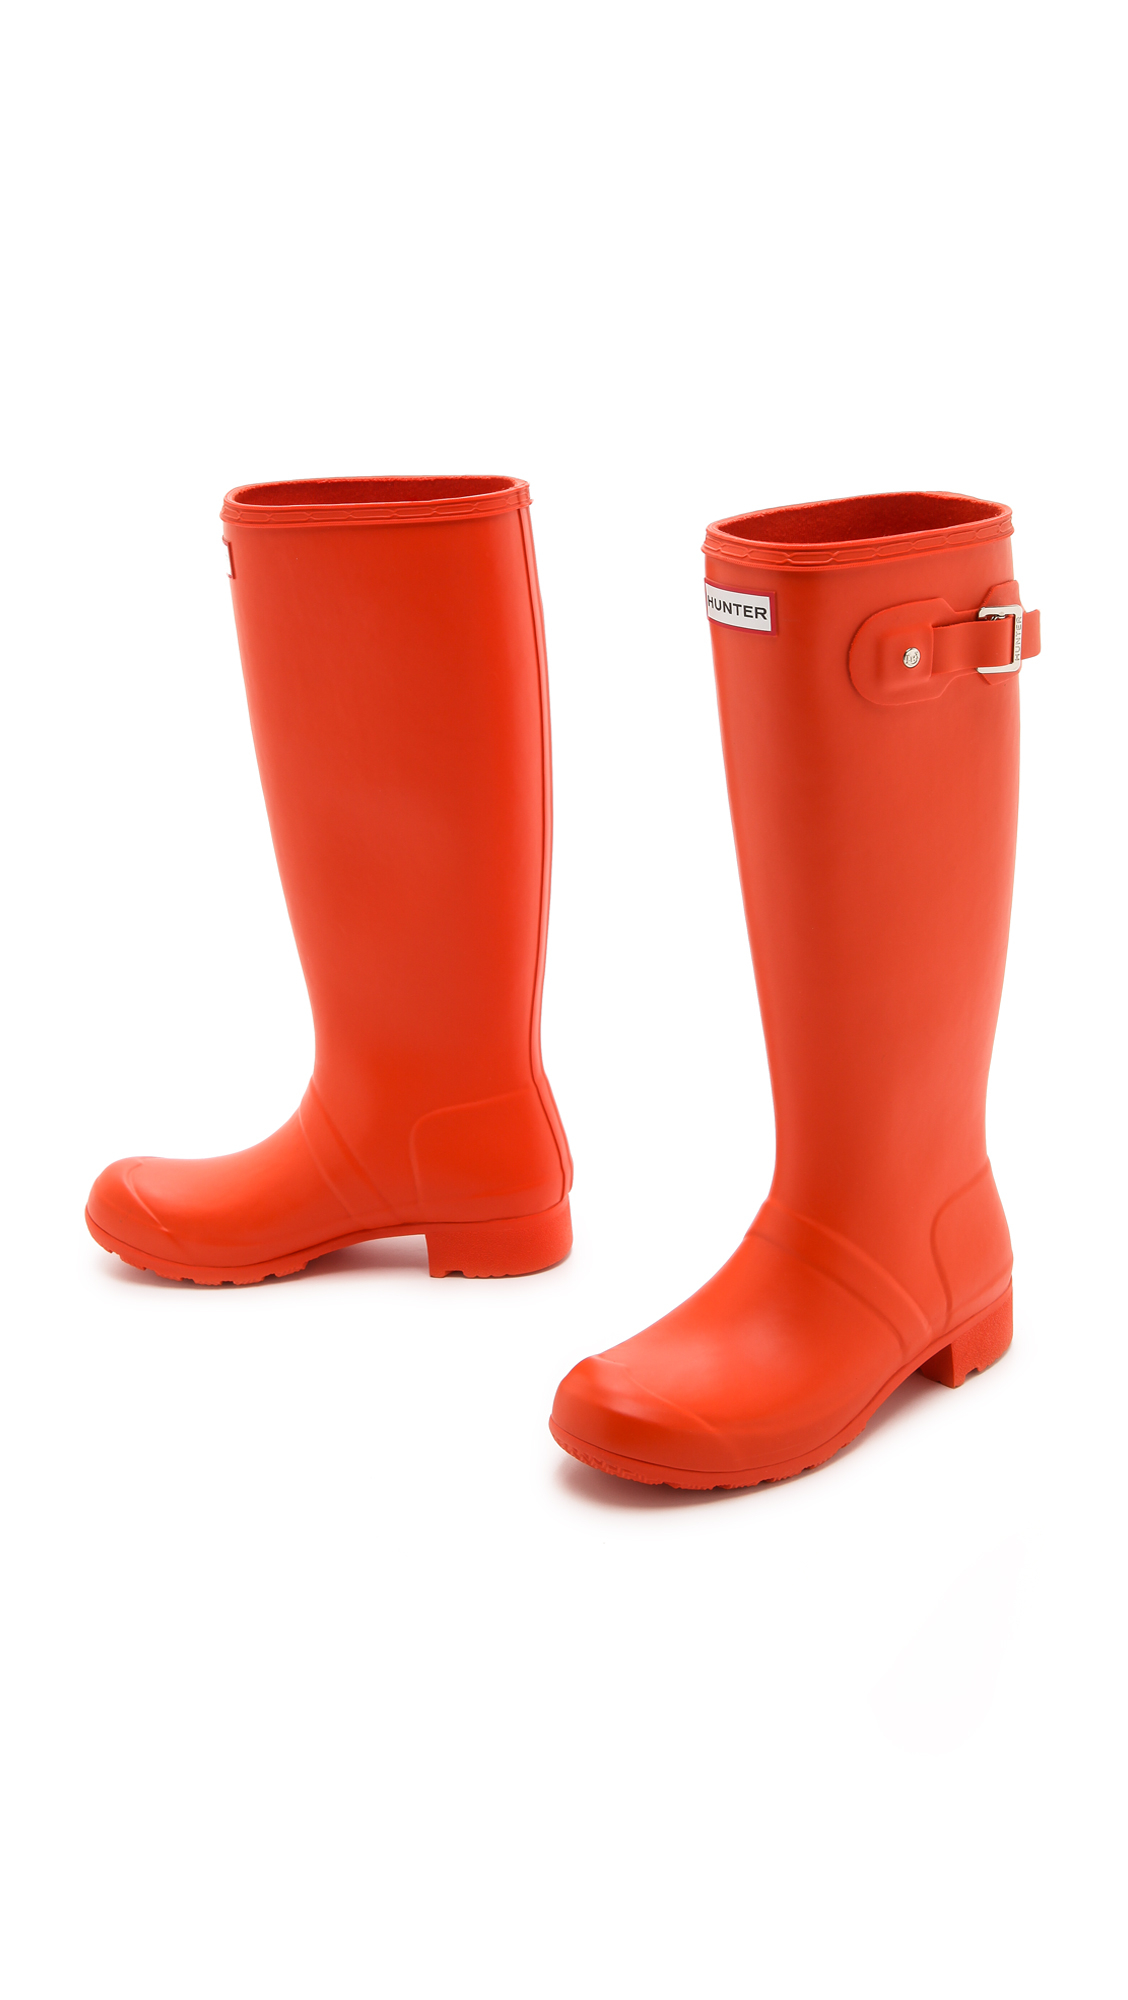 Hunter Original Packable Tour Rain Boots in Orange | Lyst